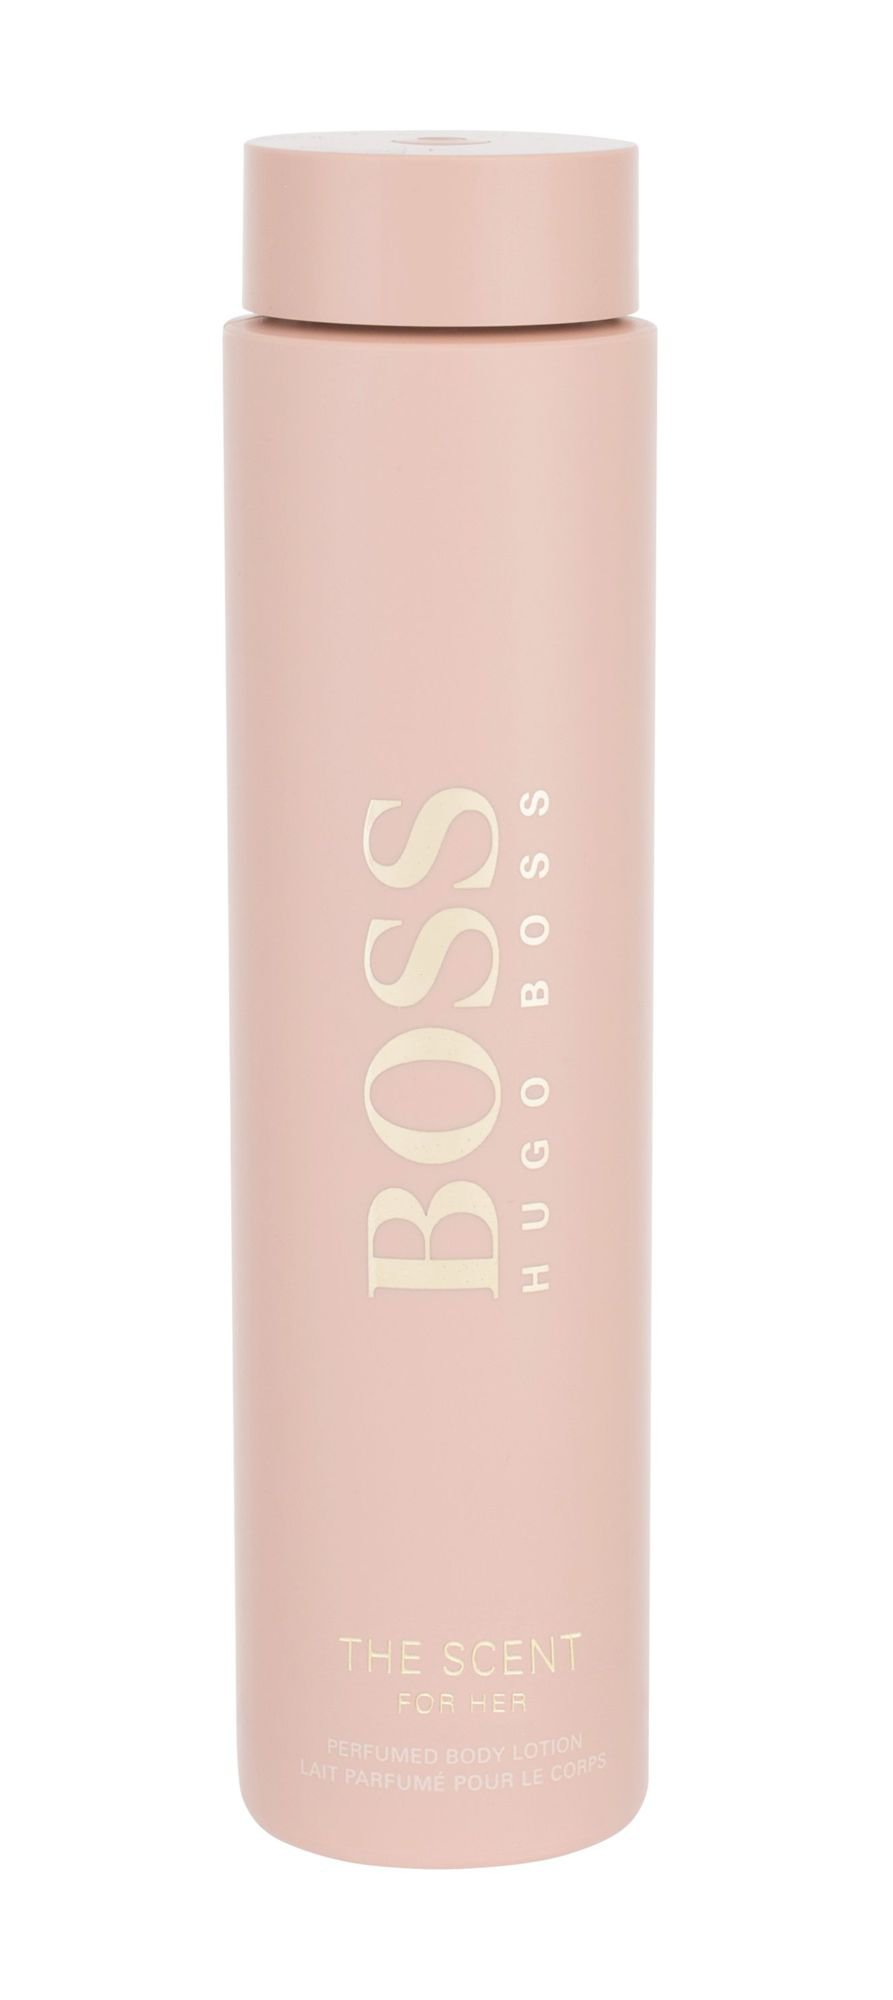 HUGO BOSS Boss The Scent For Her, Telové mlieko 200ml